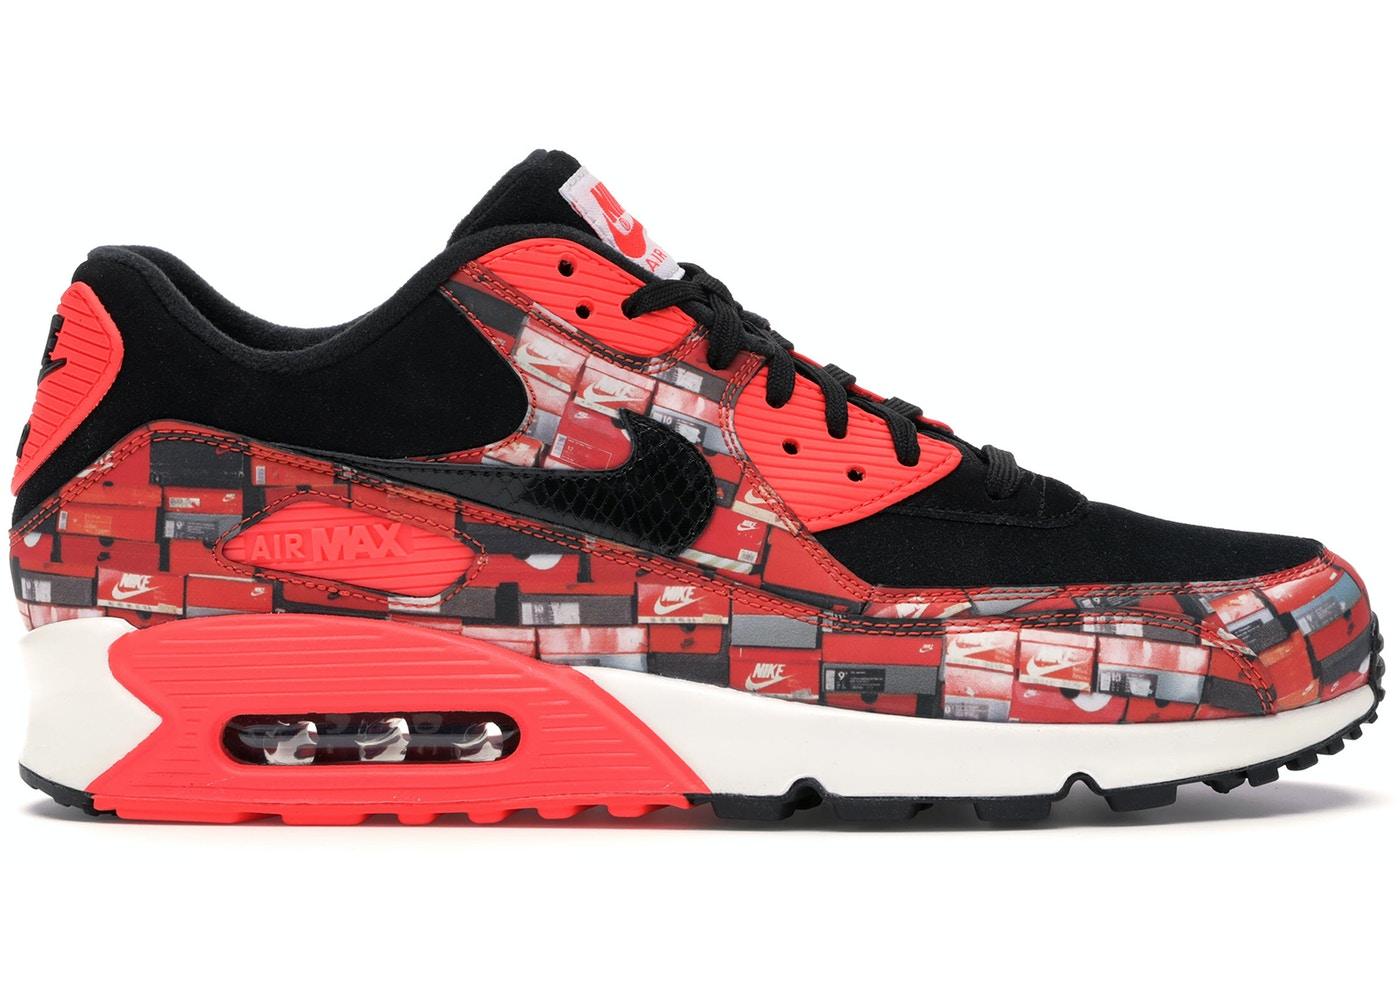 half off 2f2c6 aa600 Buy Nike Air Max 90 Shoes   Deadstock Sneakers